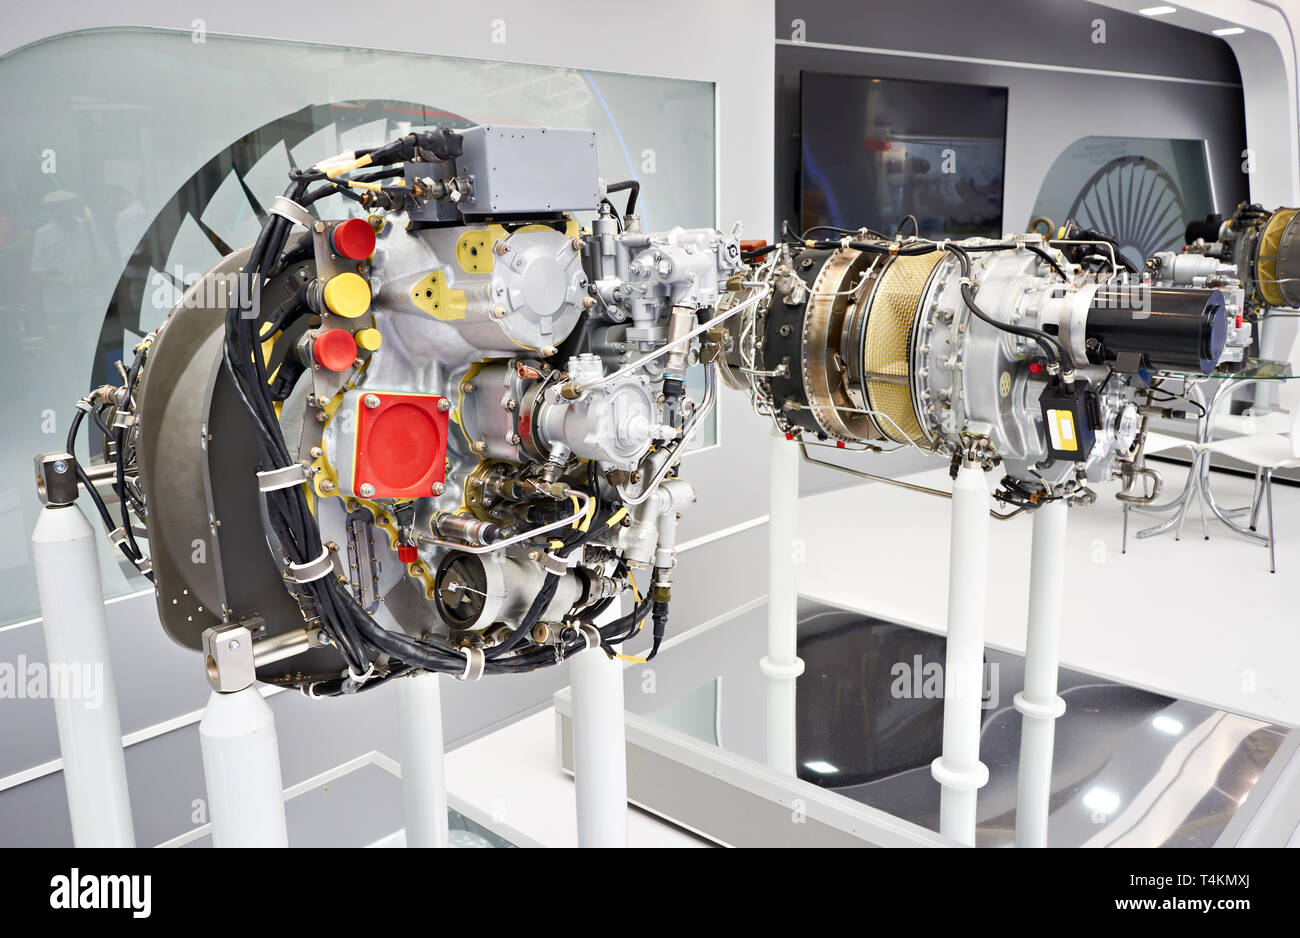 Elements turboshaft engines and turboprop aircraft on exhibition - Stock Image